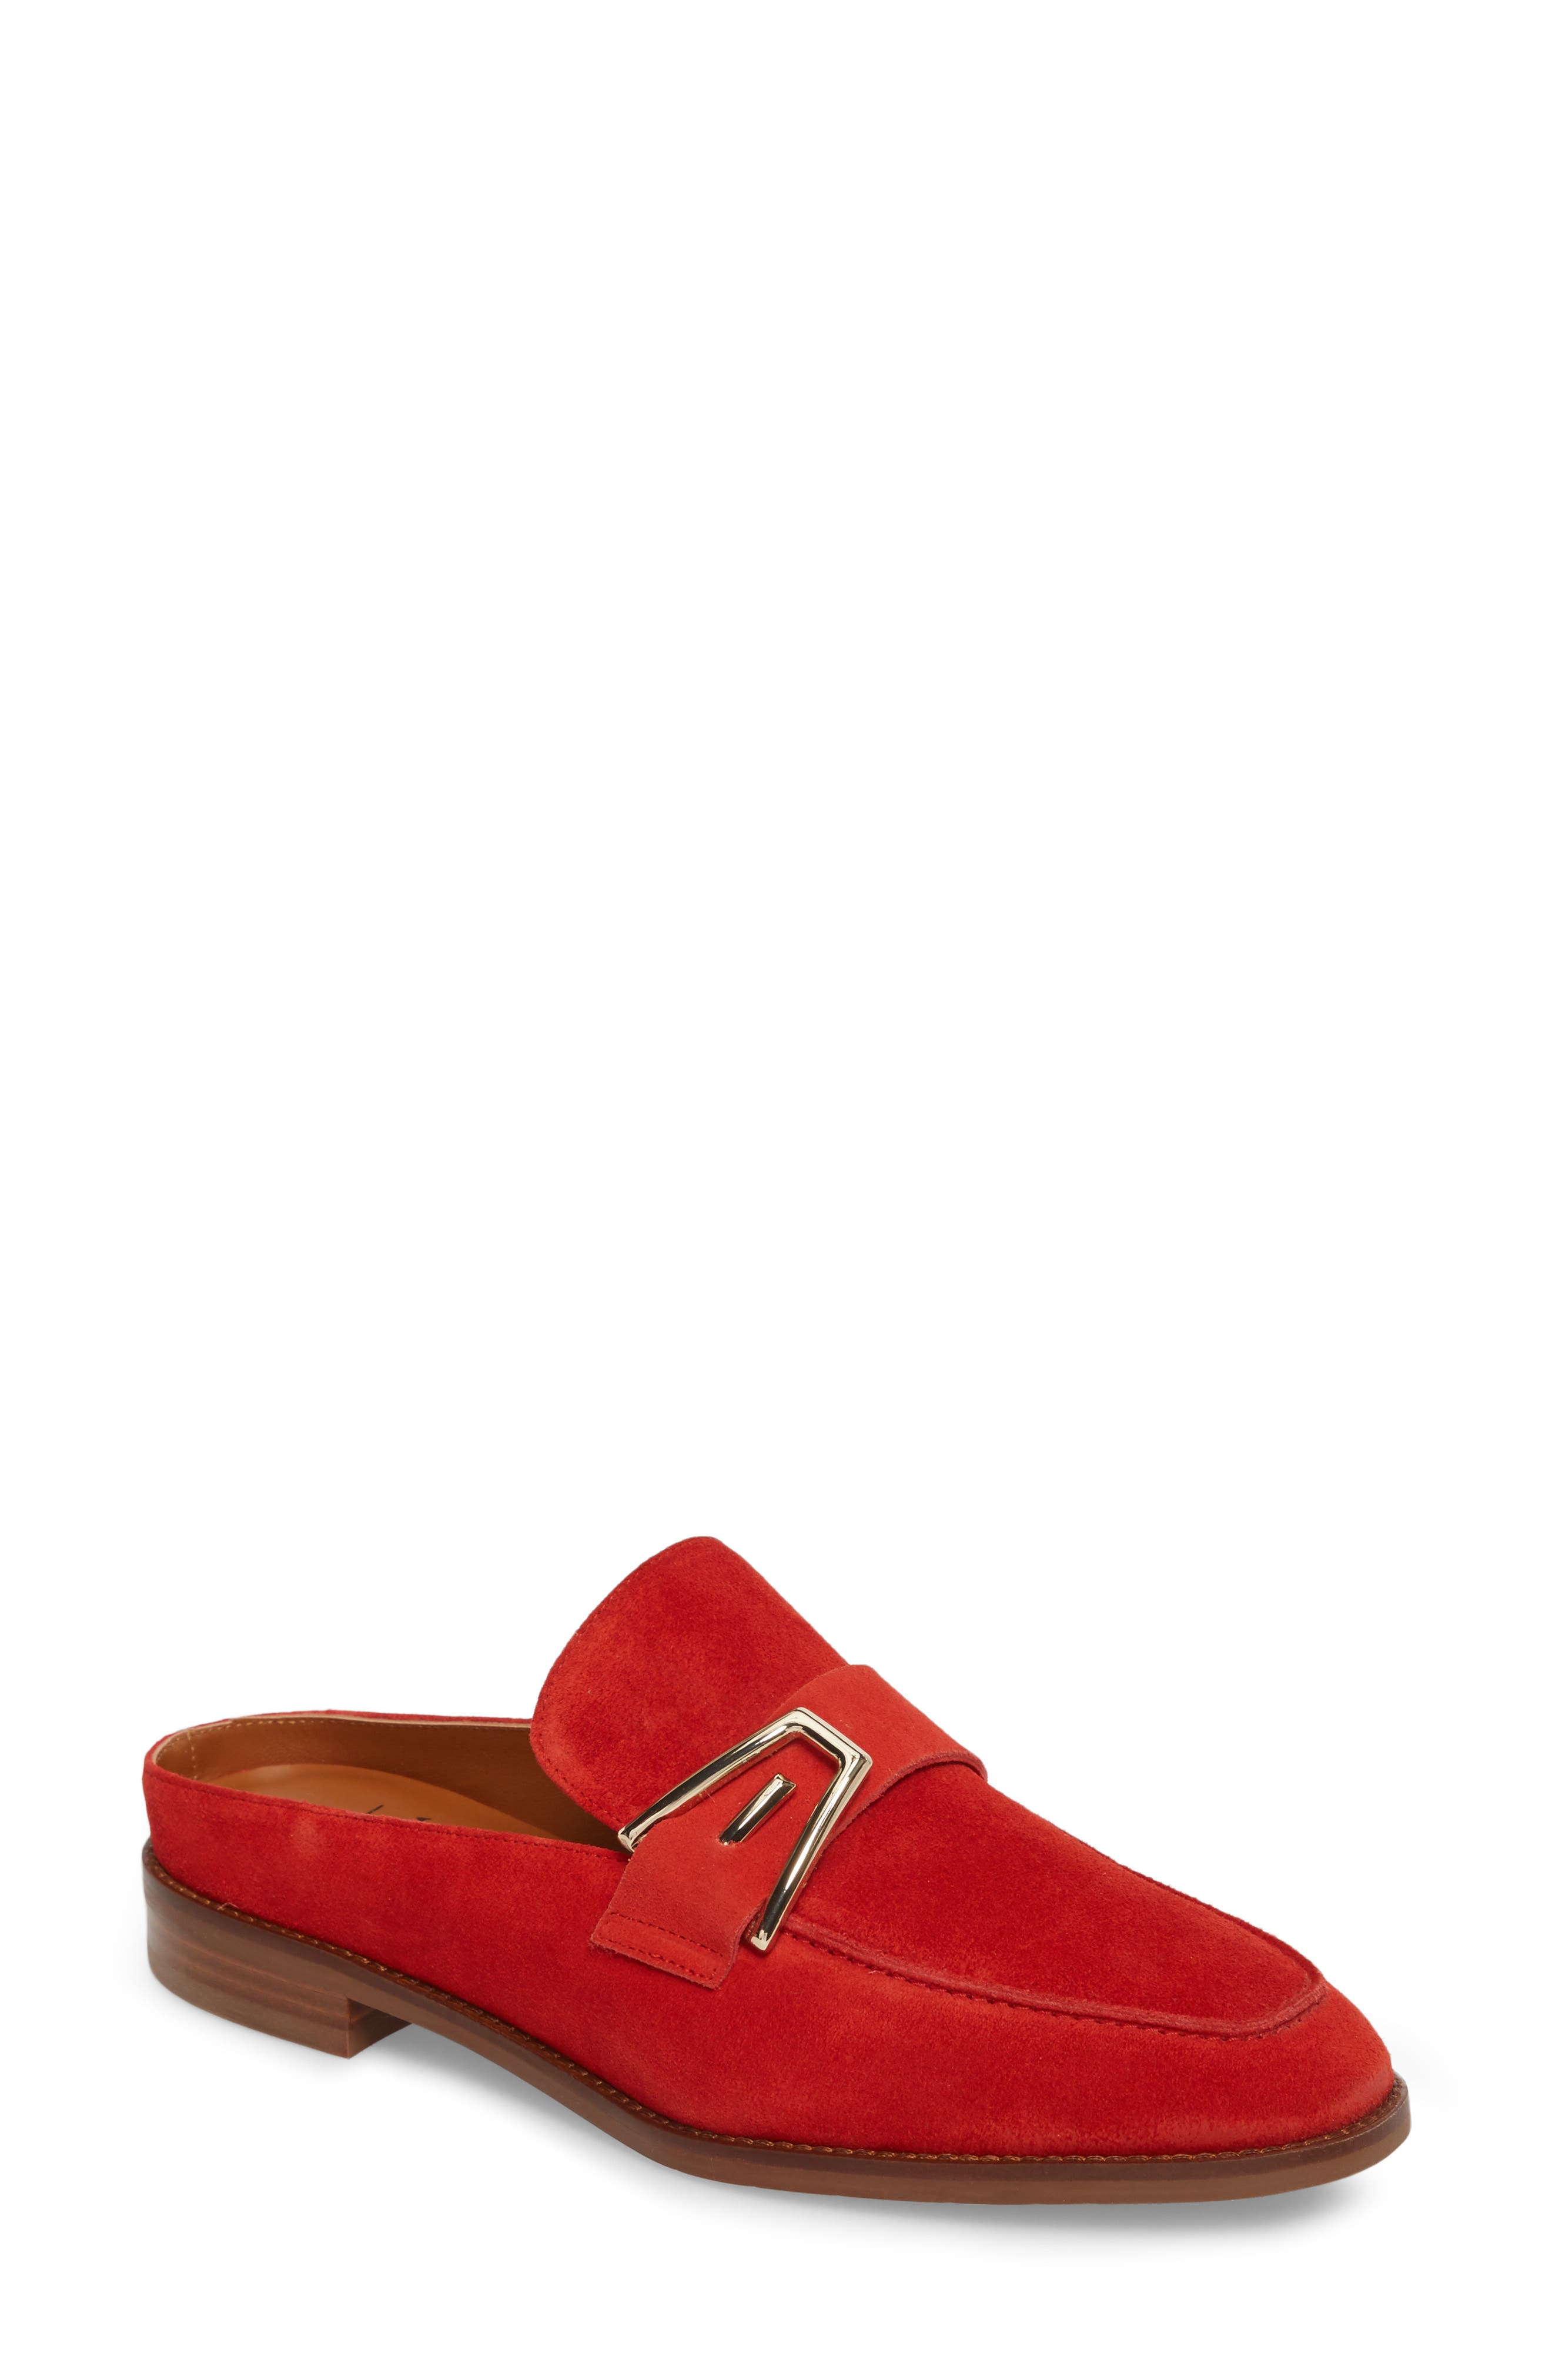 Aquatalia Tosca Loafer Mule (Women)